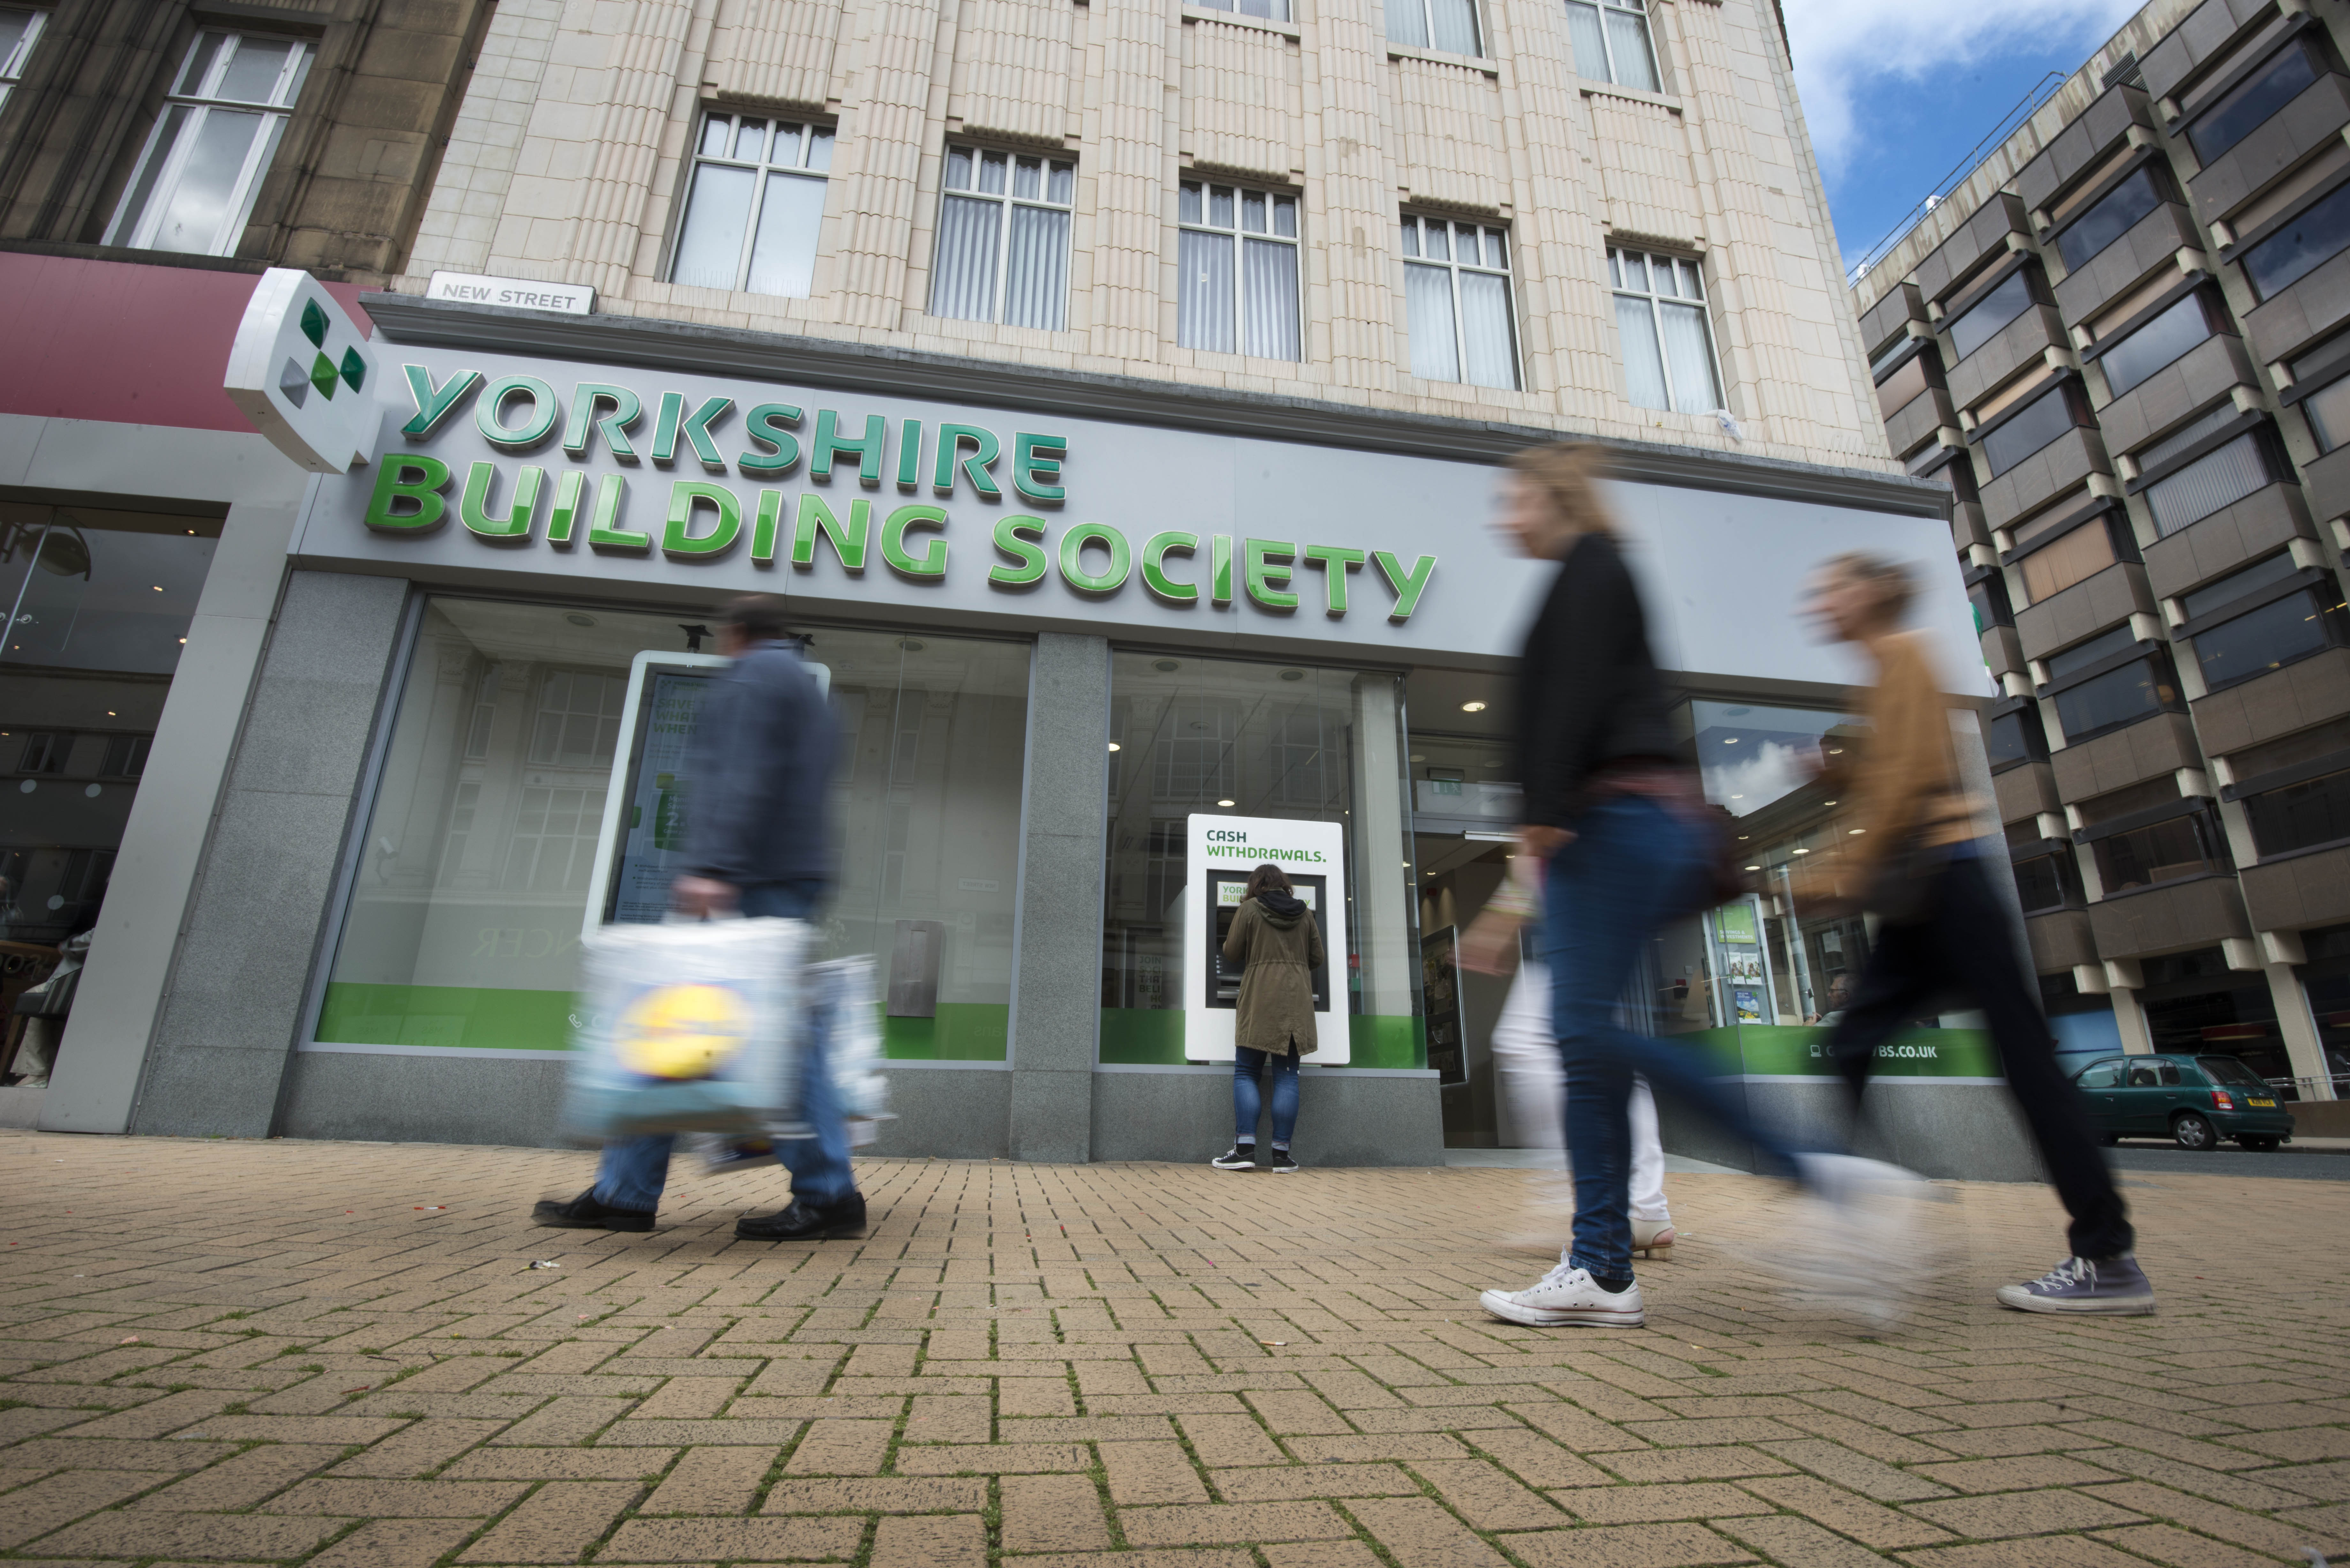 Yorkshire Building Society new